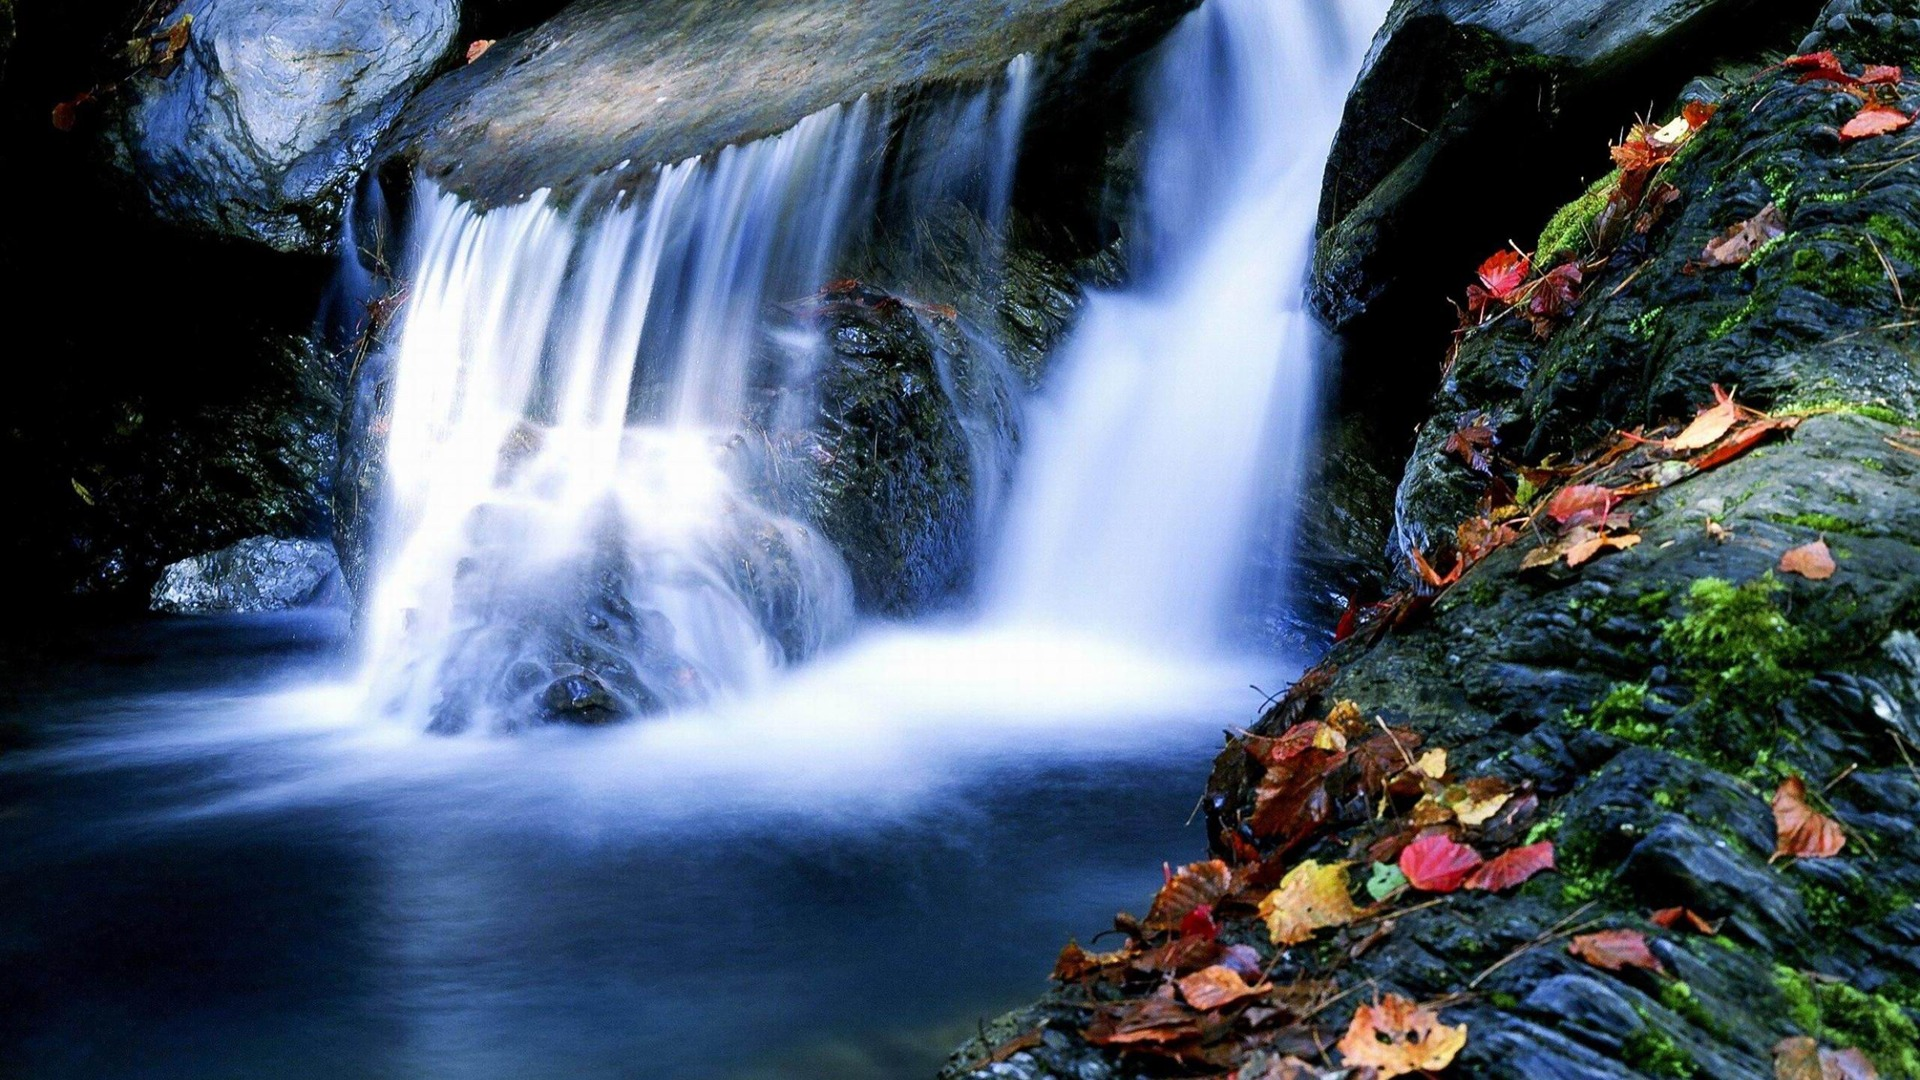 Waterfall Maple-Nature rivers Landscape Wallpaper Preview | 10wallpaper.com